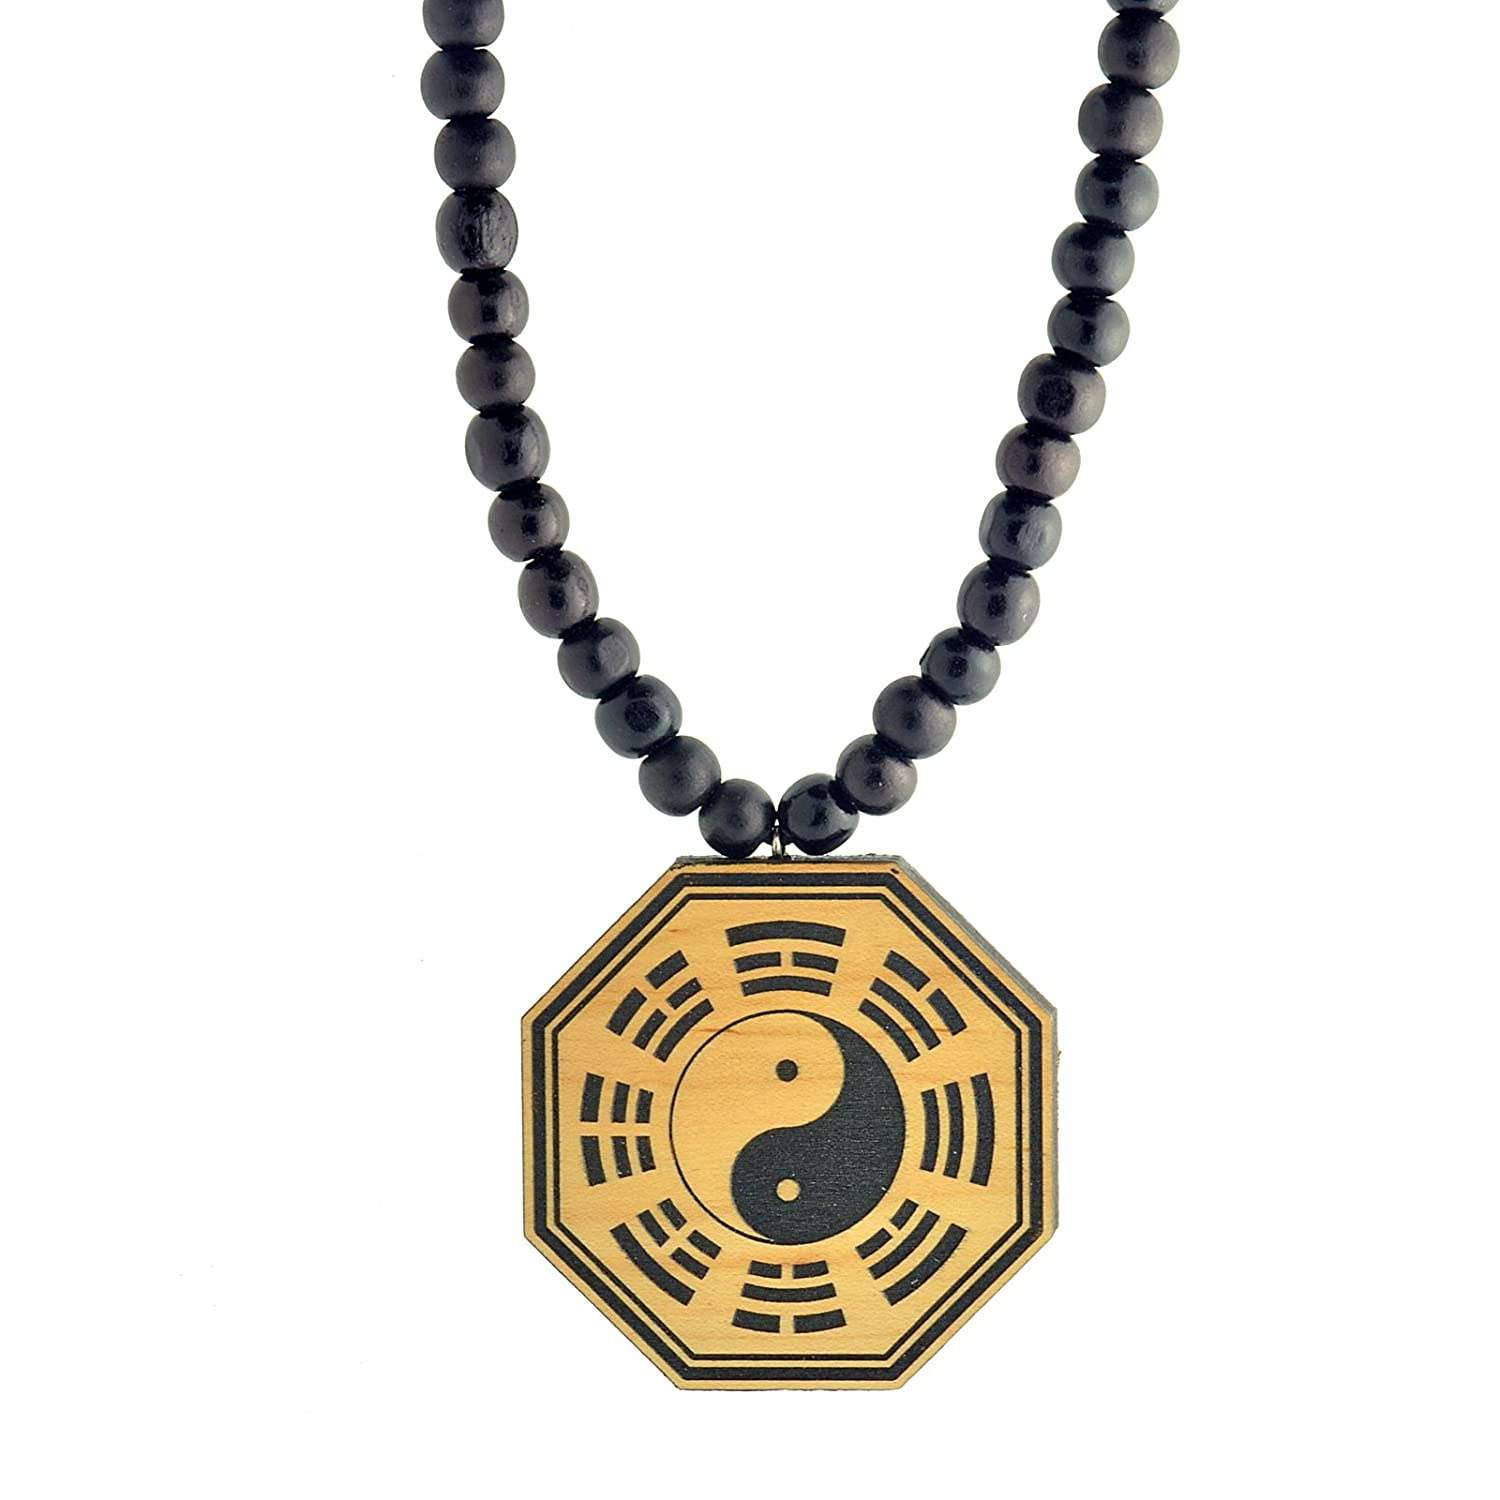 Amazon octagon yin and the yang wooden pendant with wood bead amazon octagon yin and the yang wooden pendant with wood bead necklace swaggwood made in usa jewelry aloadofball Image collections